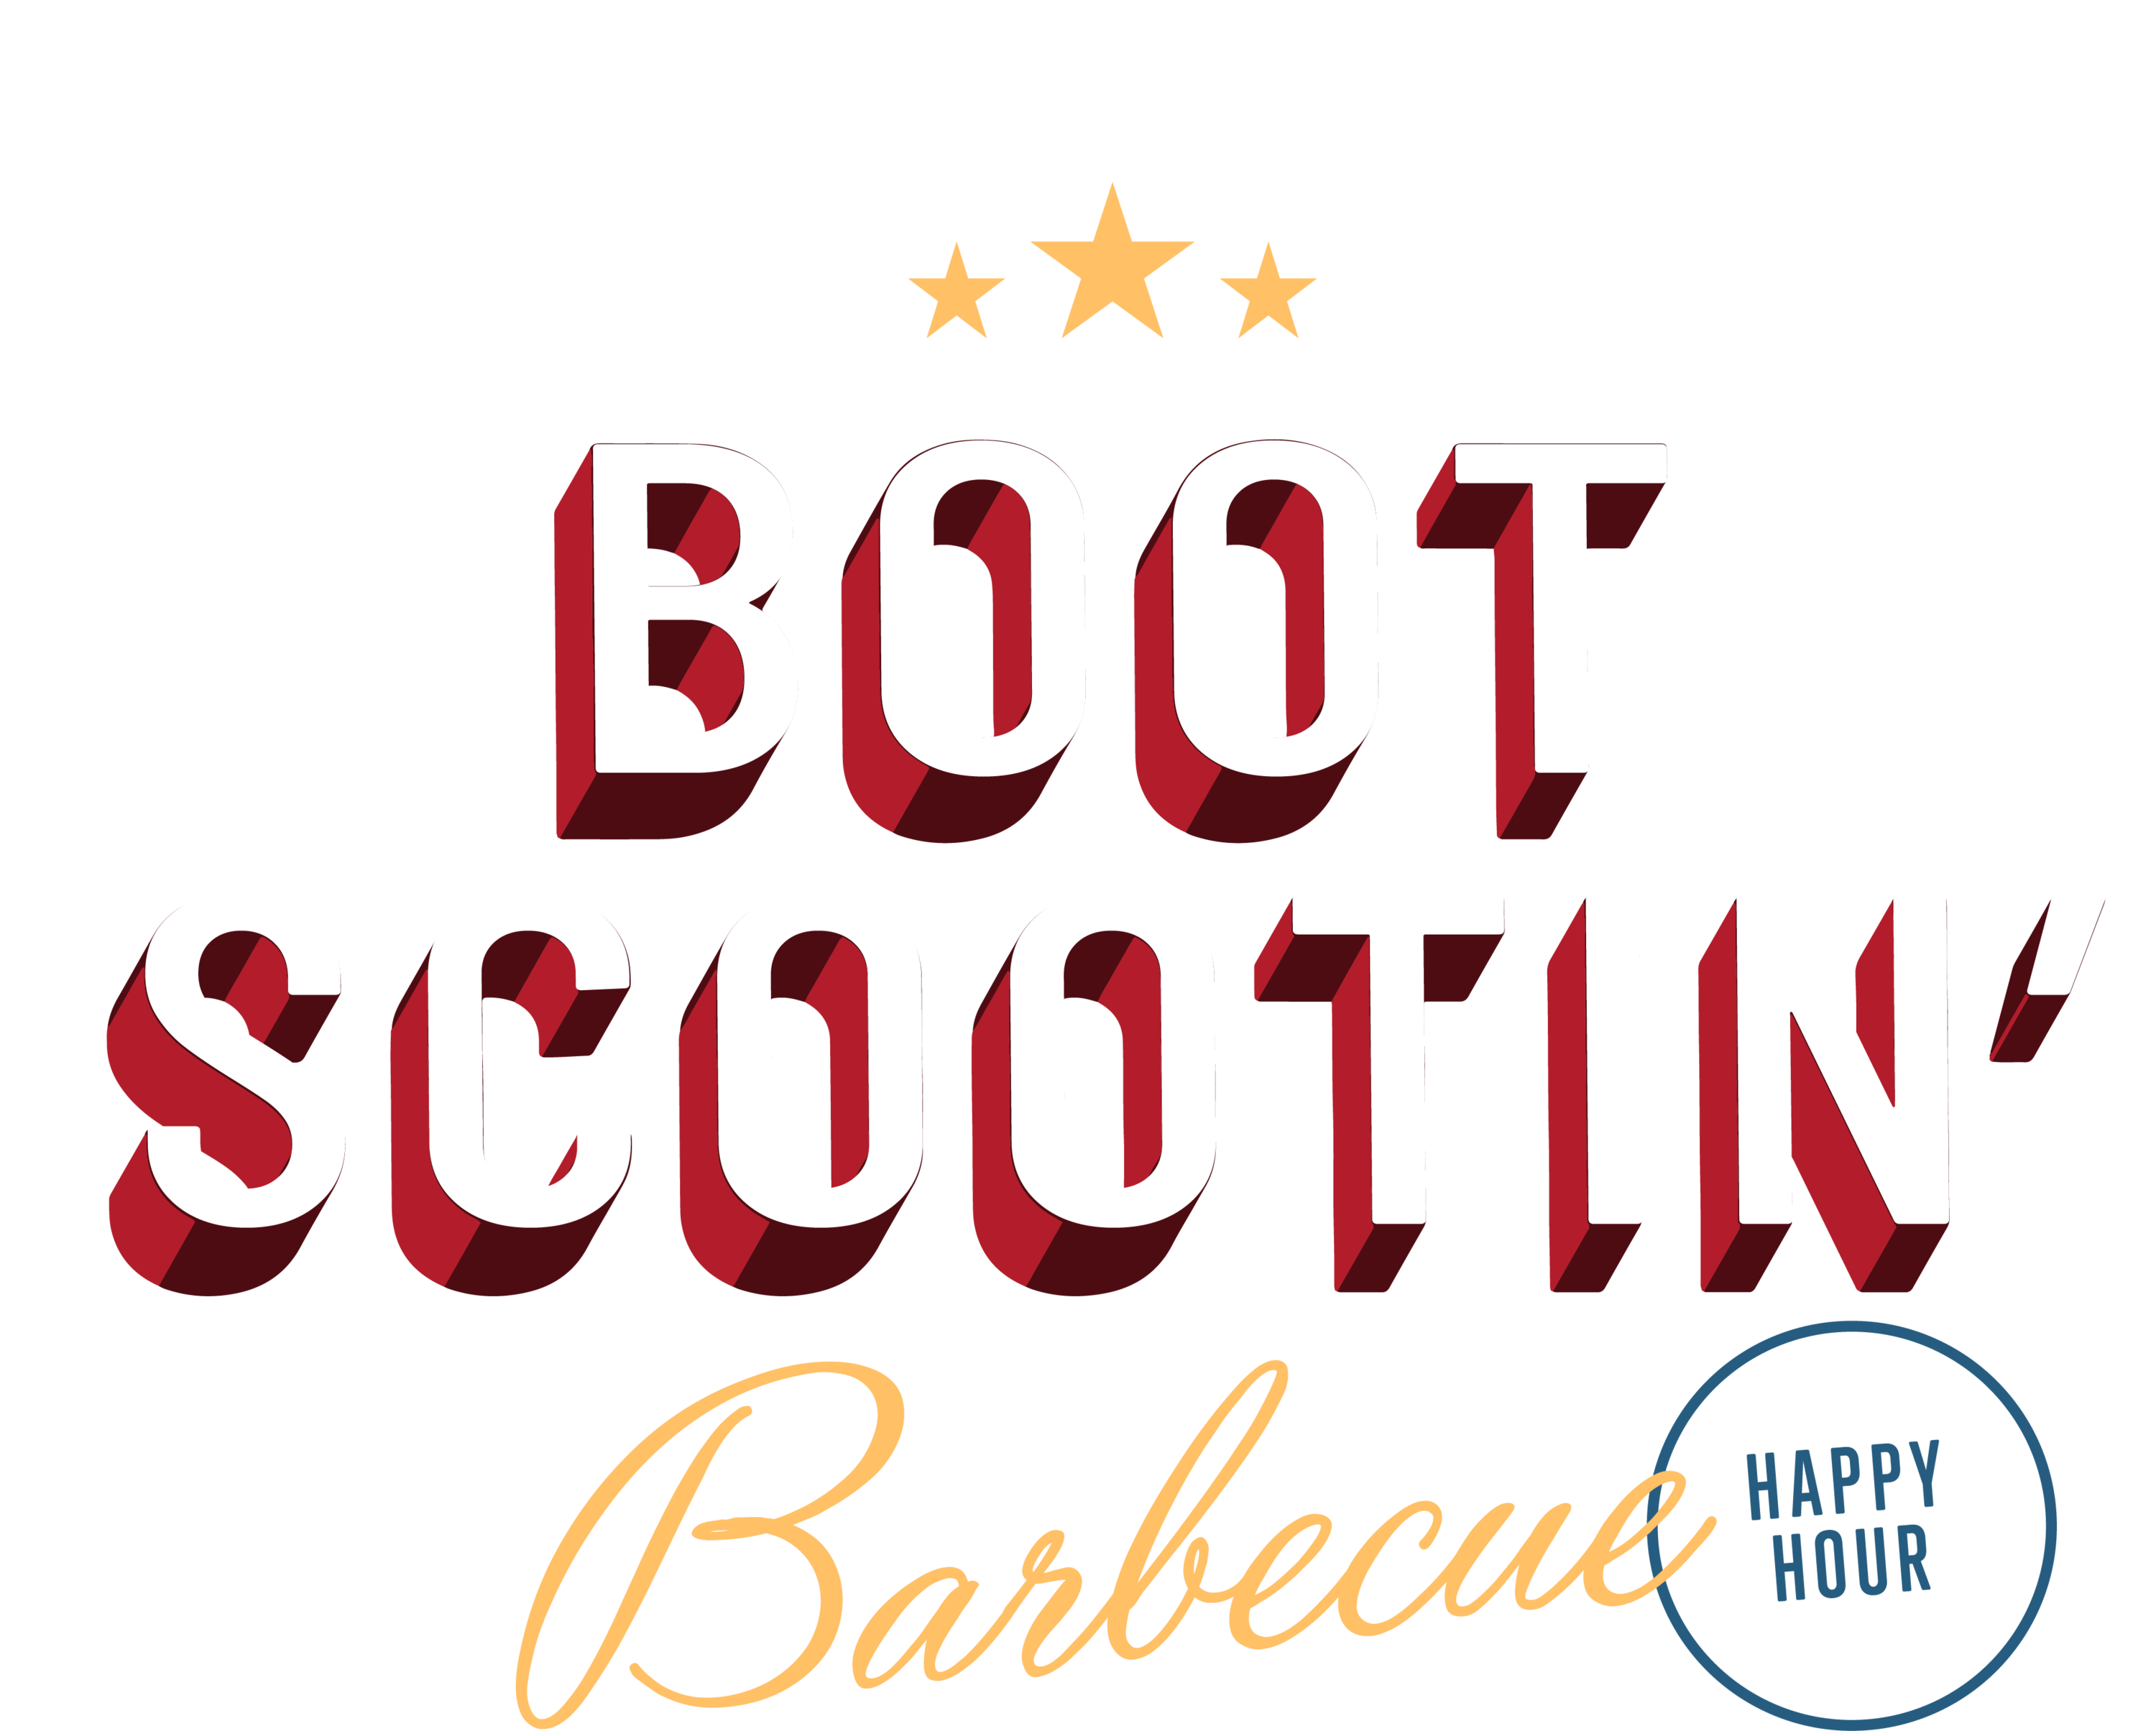 You're invited to the SXSW Boot Scootin' Barbecue Happy Hour